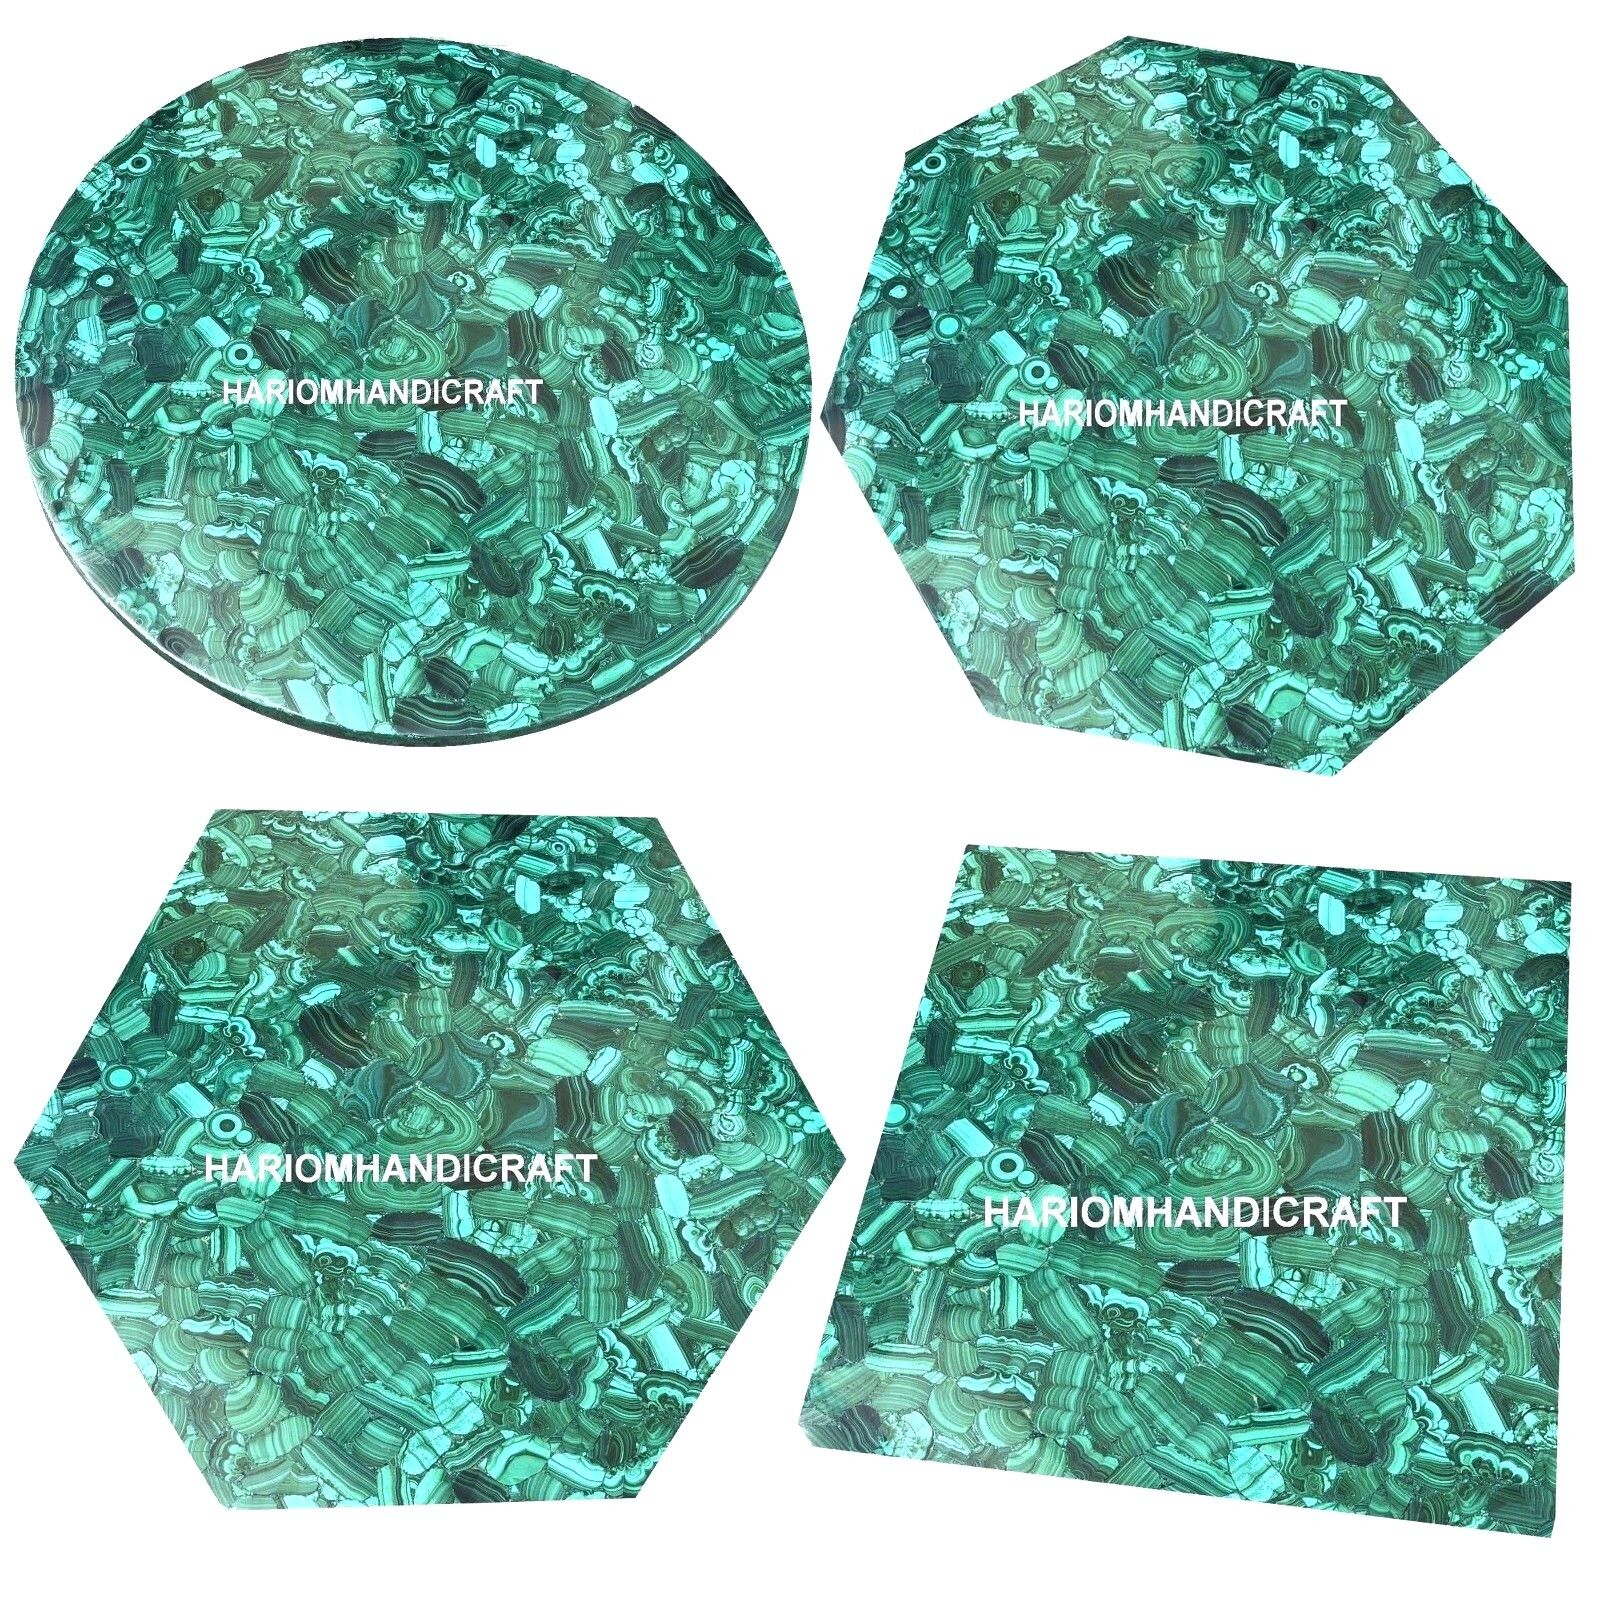 Random Malachite Marble Exclusive Console Table Top Mosaic I